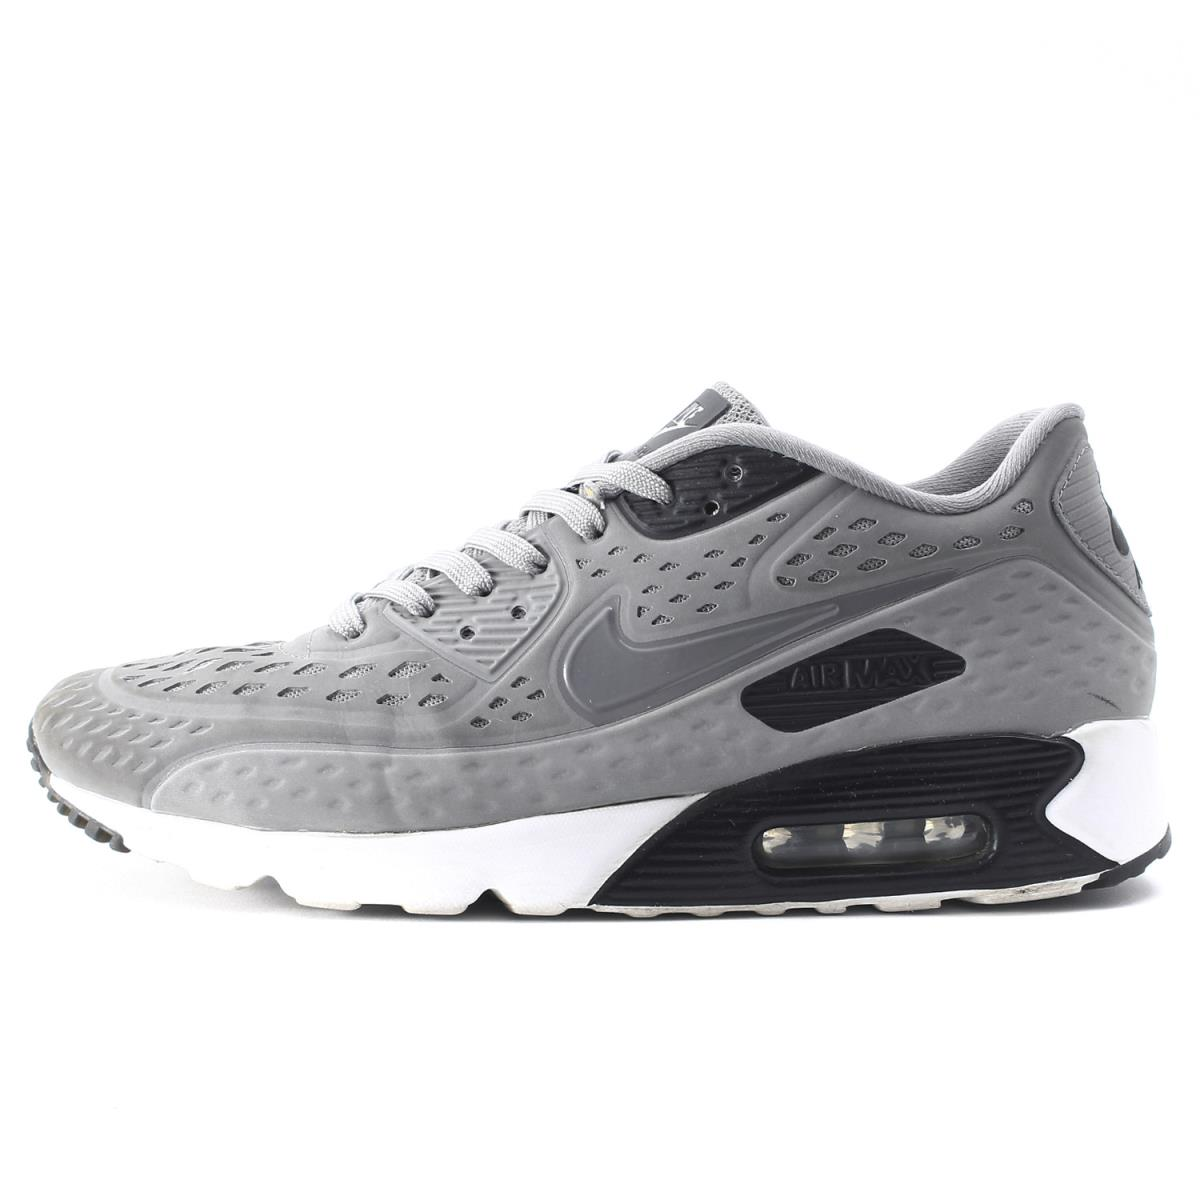 new product 31820 7d835 NIKE (Nike) AIR MAX 90 ULTRA BR (725,222-002) dust black ...